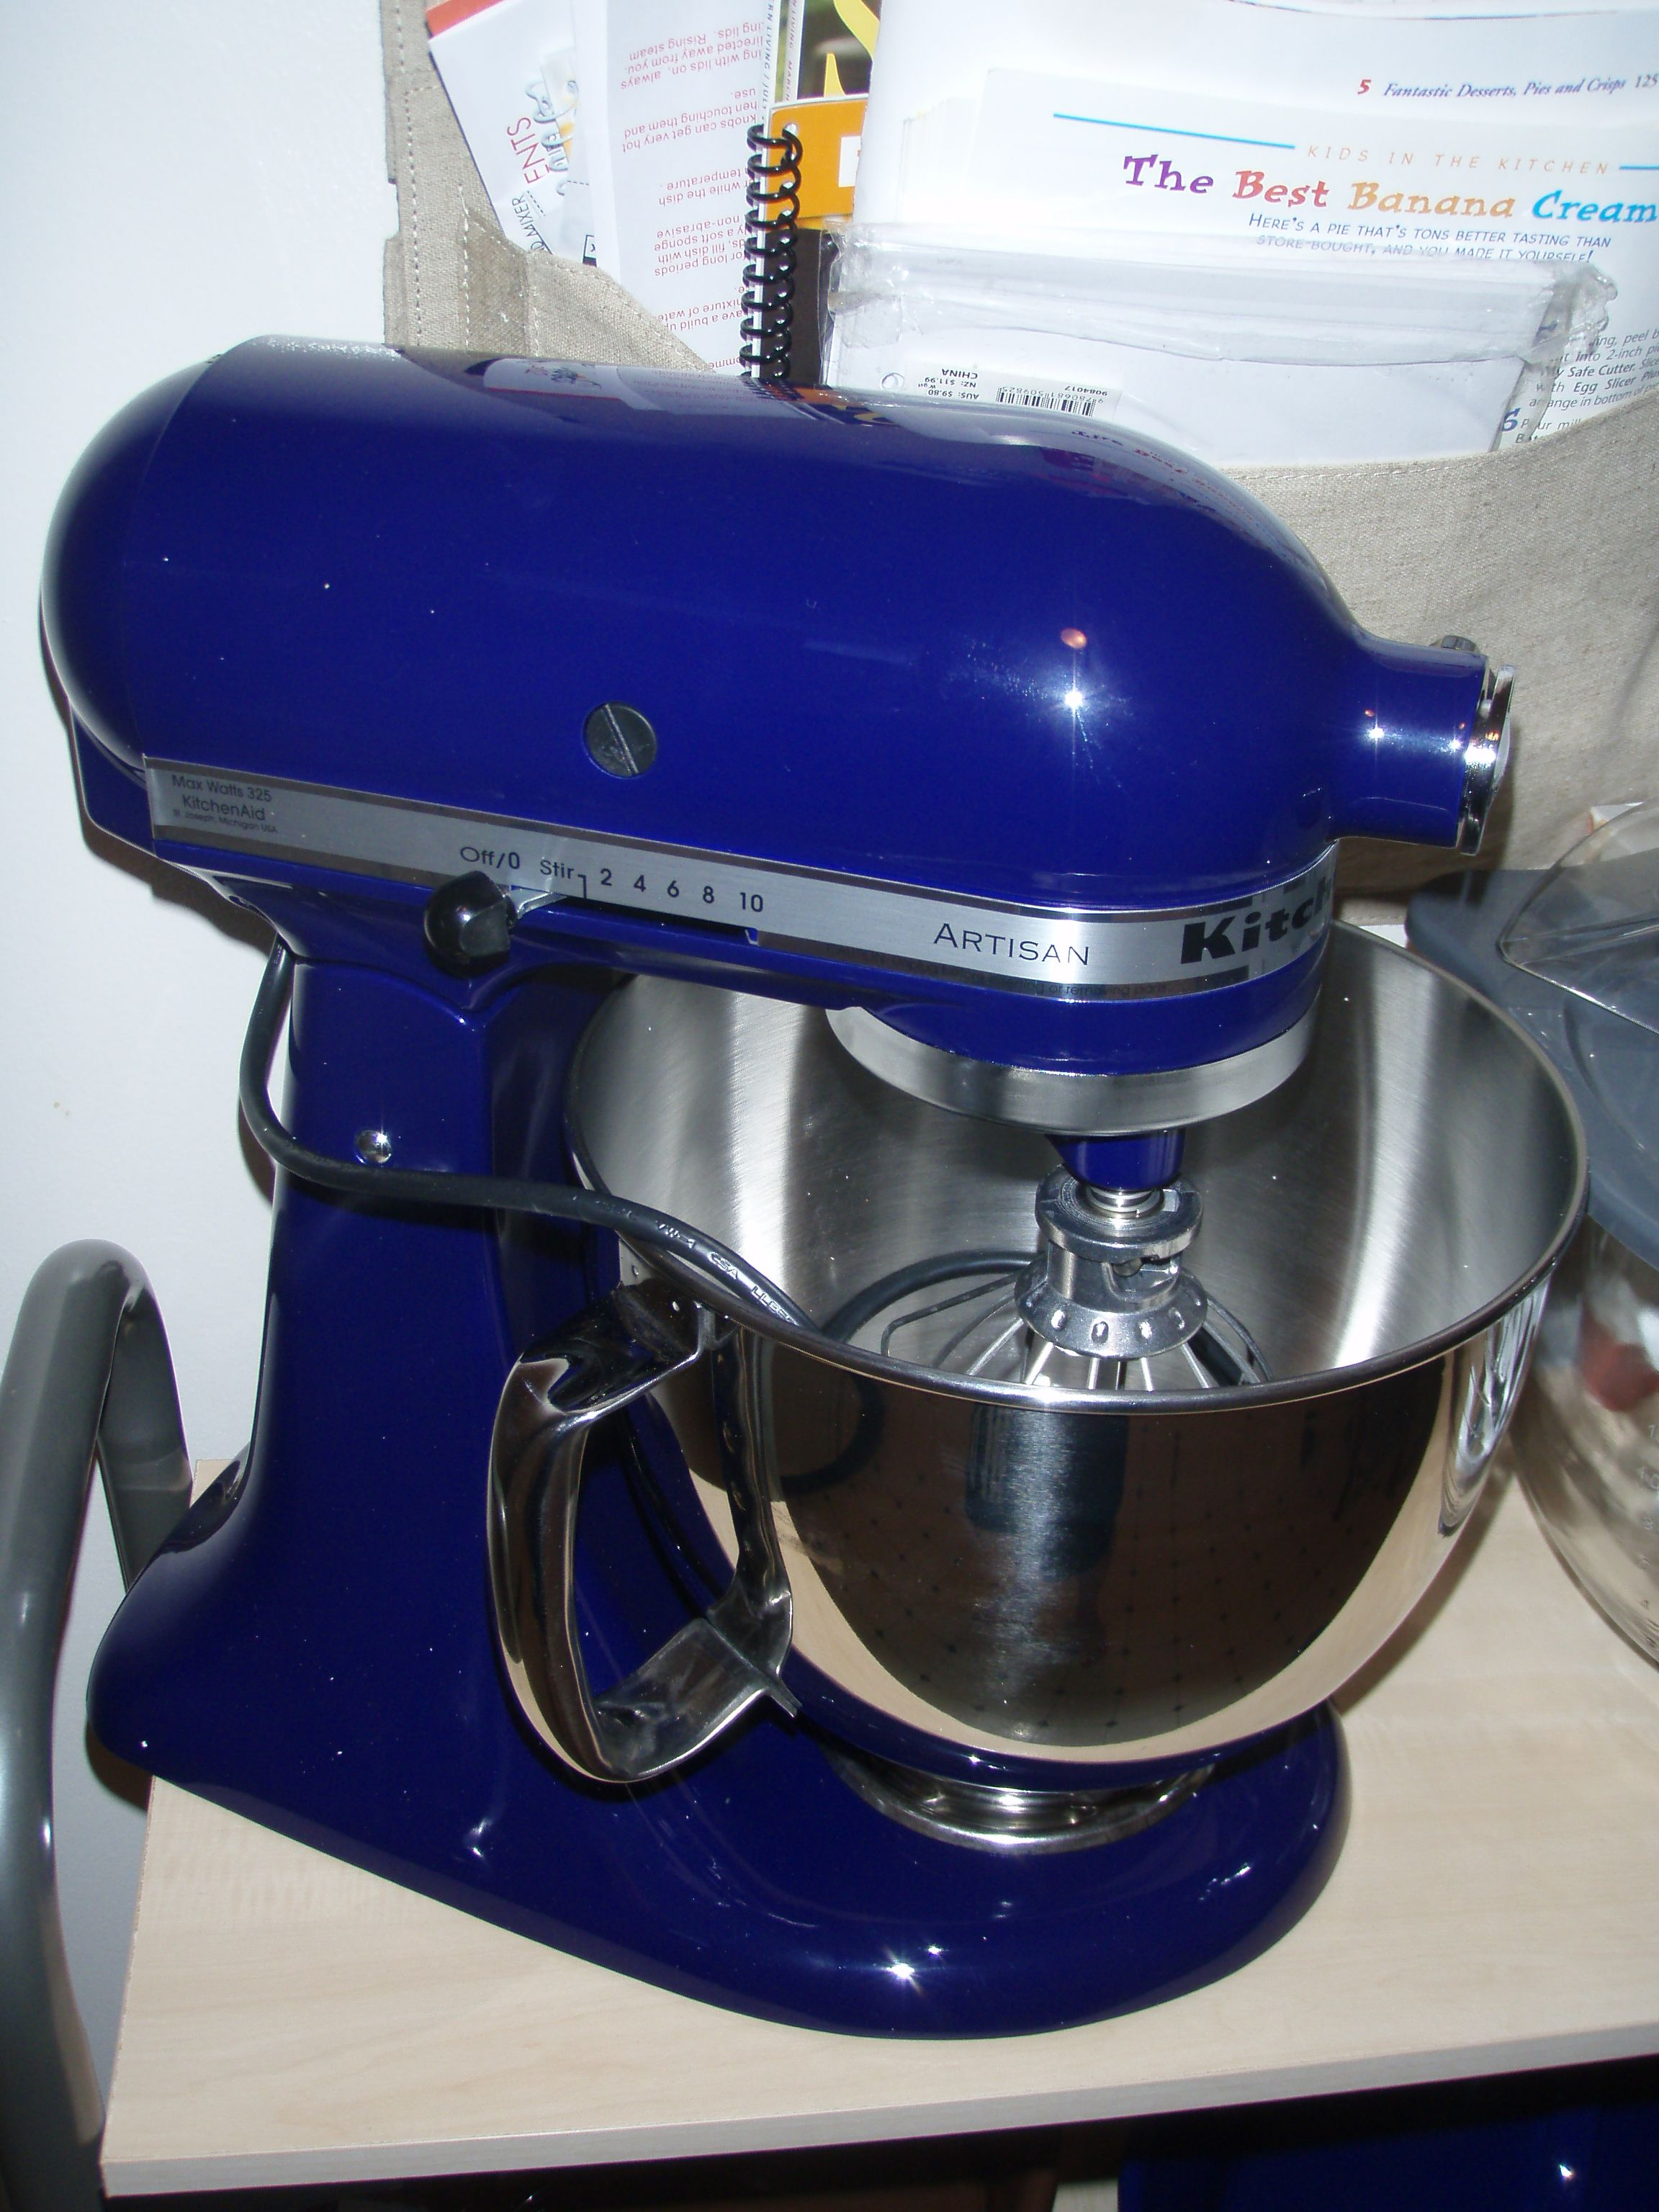 Cobalt blue kitchenaid stand mixer i want this so badly